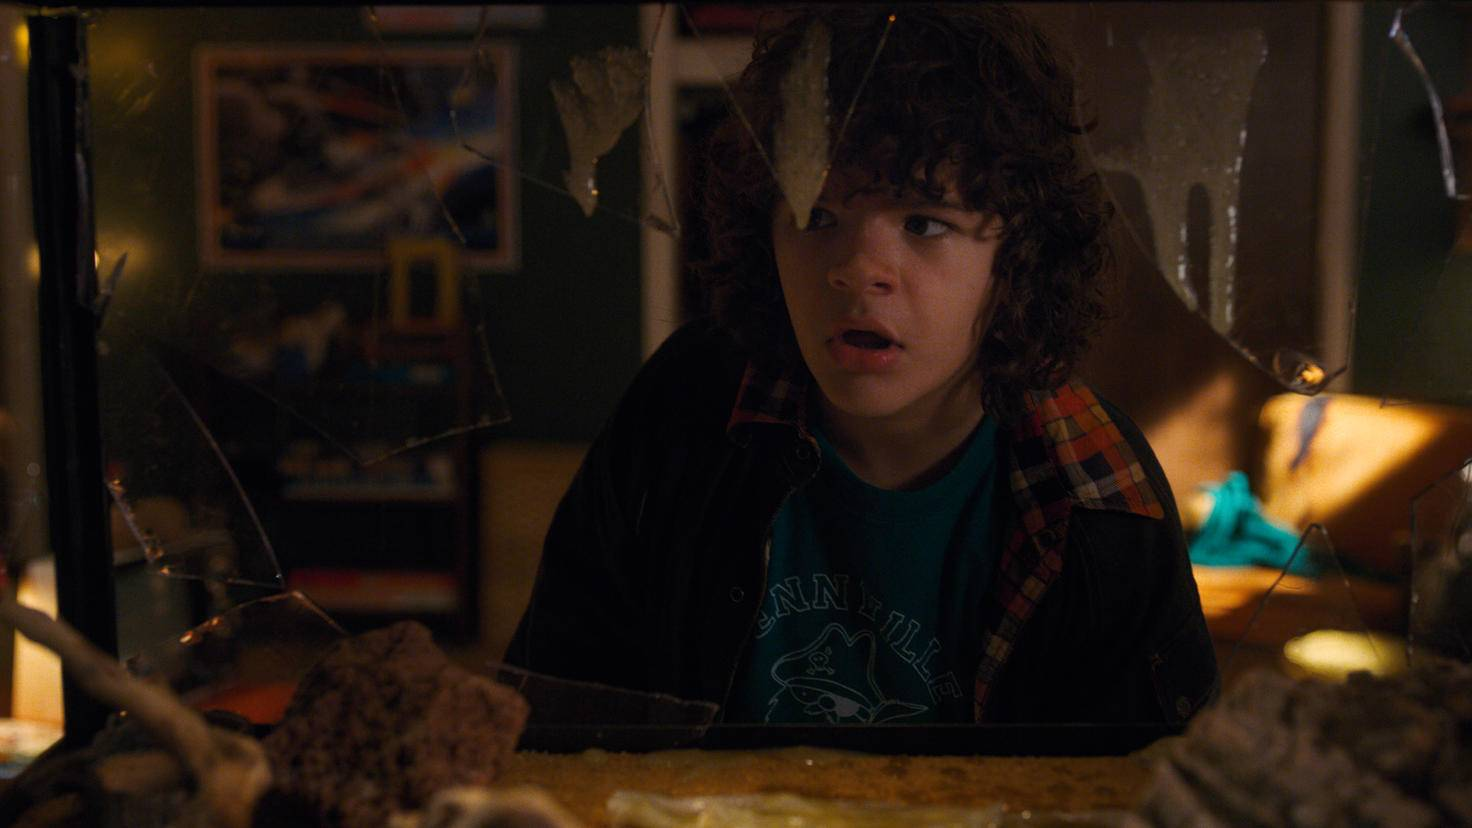 Gaten Matarazzo als Dustin in Stranger Things